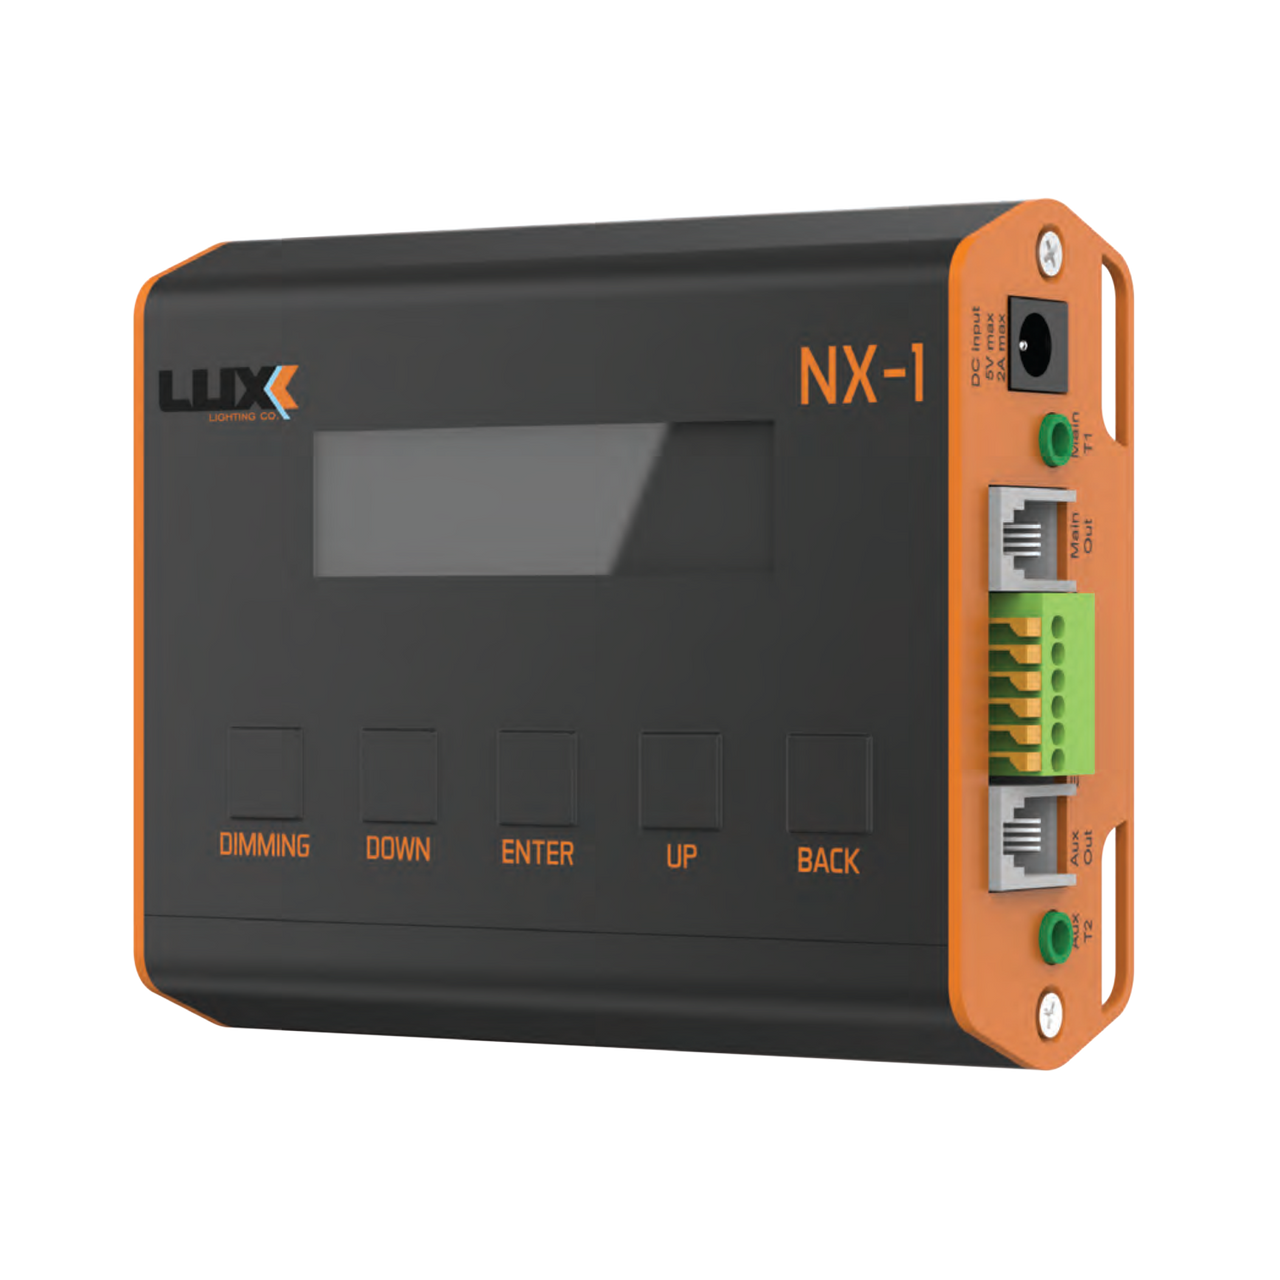 Lux NX-1 controller